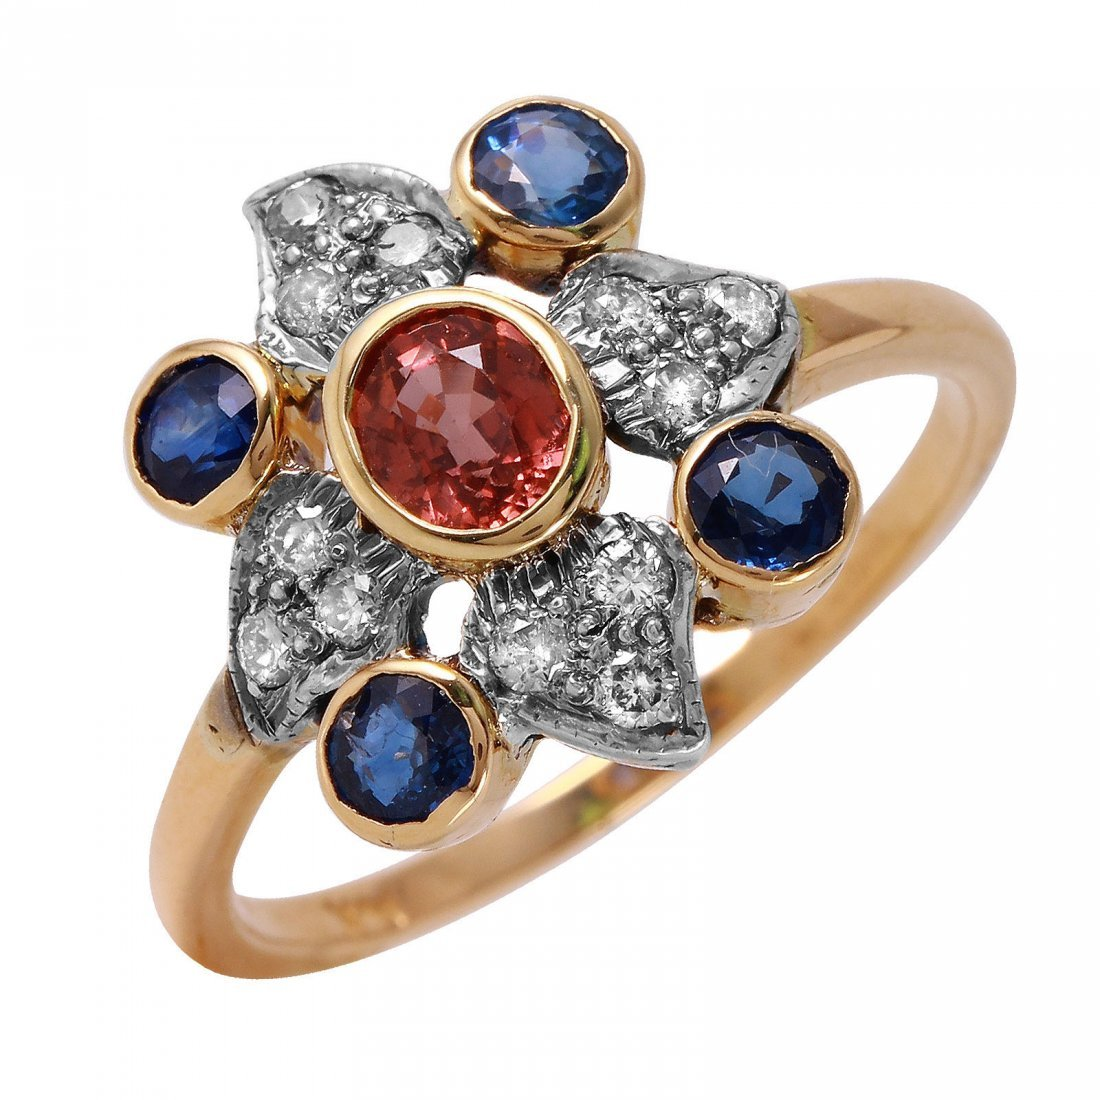 14KT Yellow Gold Padparadscha Sapphire Ring